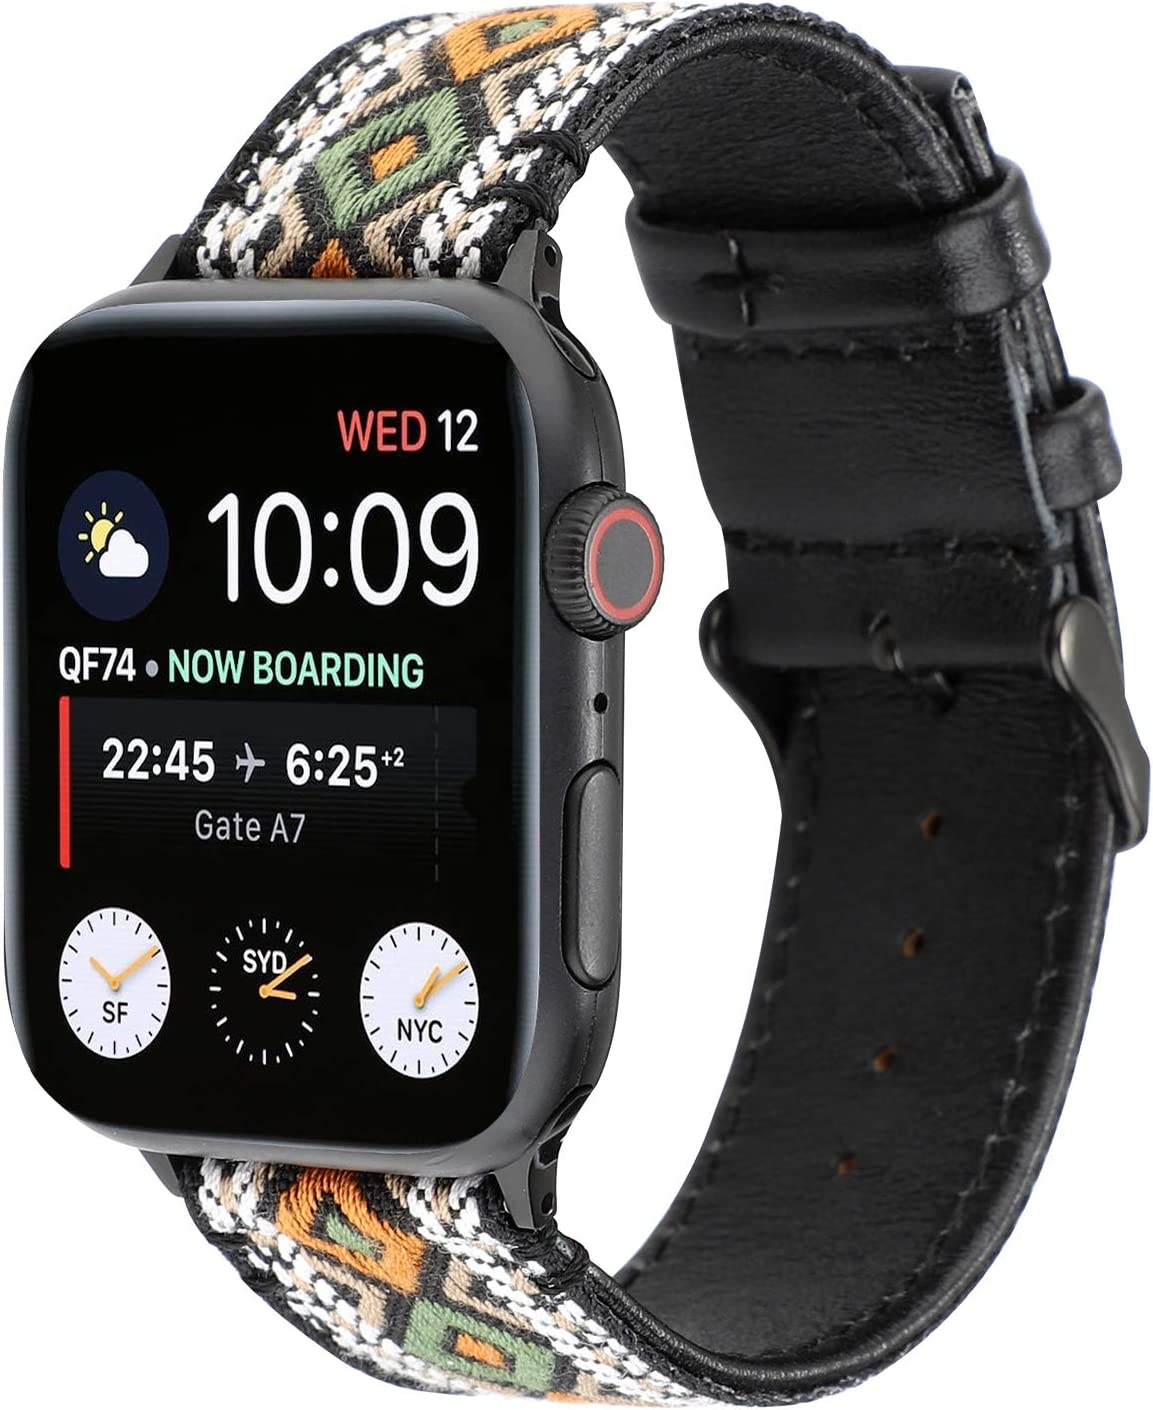 WONMILLE Compatible with Apple Watch Band Women 38mm 40mm, Handmade Weave Straps National Rainbow Bracelet for iWatch Straps Series 5,Series 4,Series 3,Series 2,Series 1 (38mm/40mm, Retro)